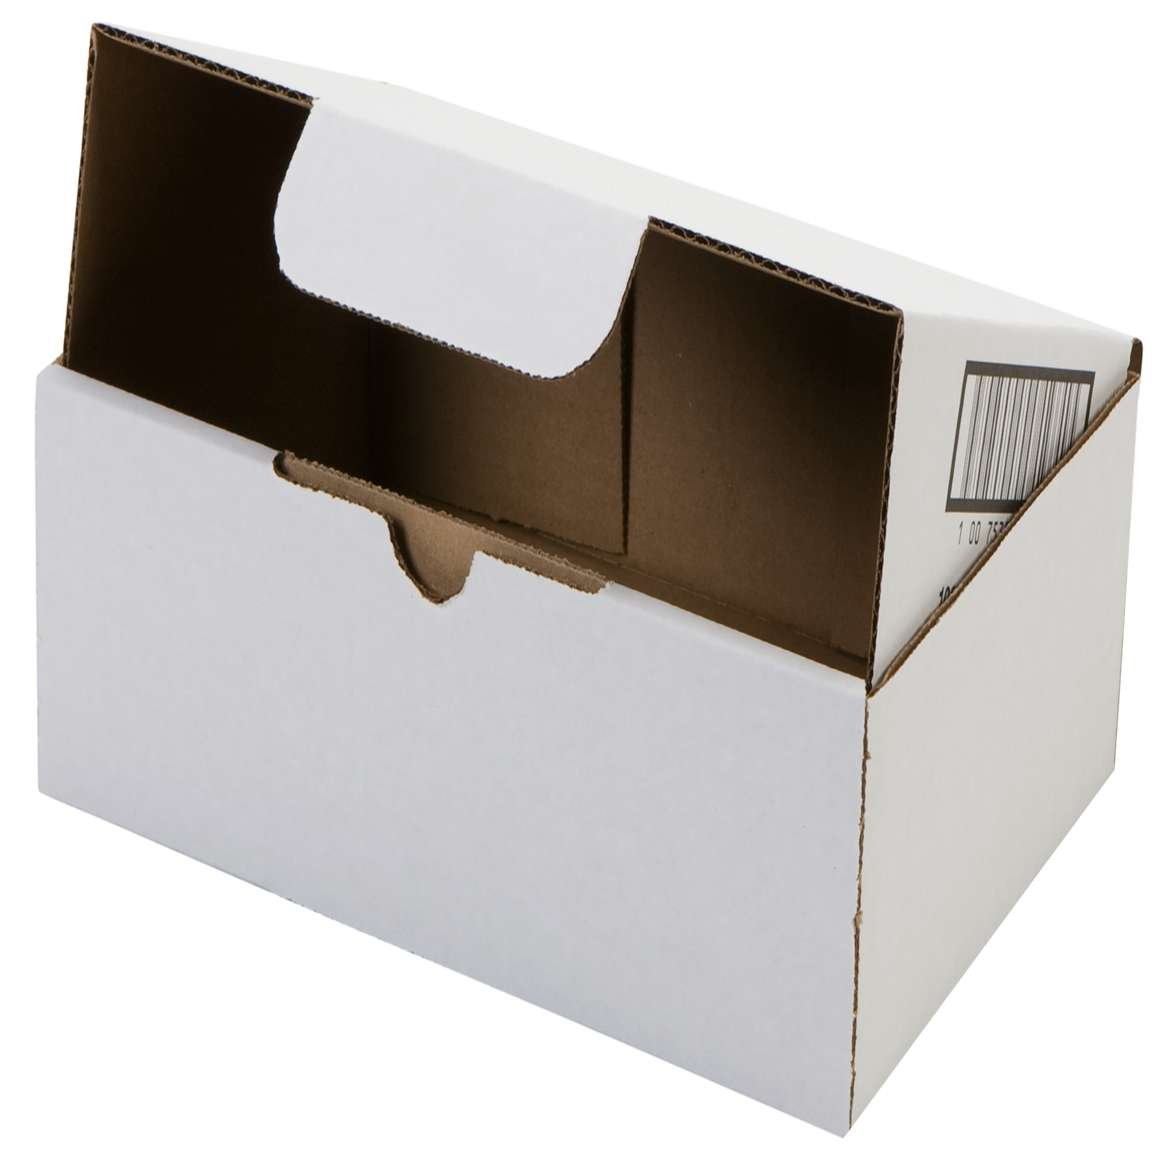 Self-Locking Boxes